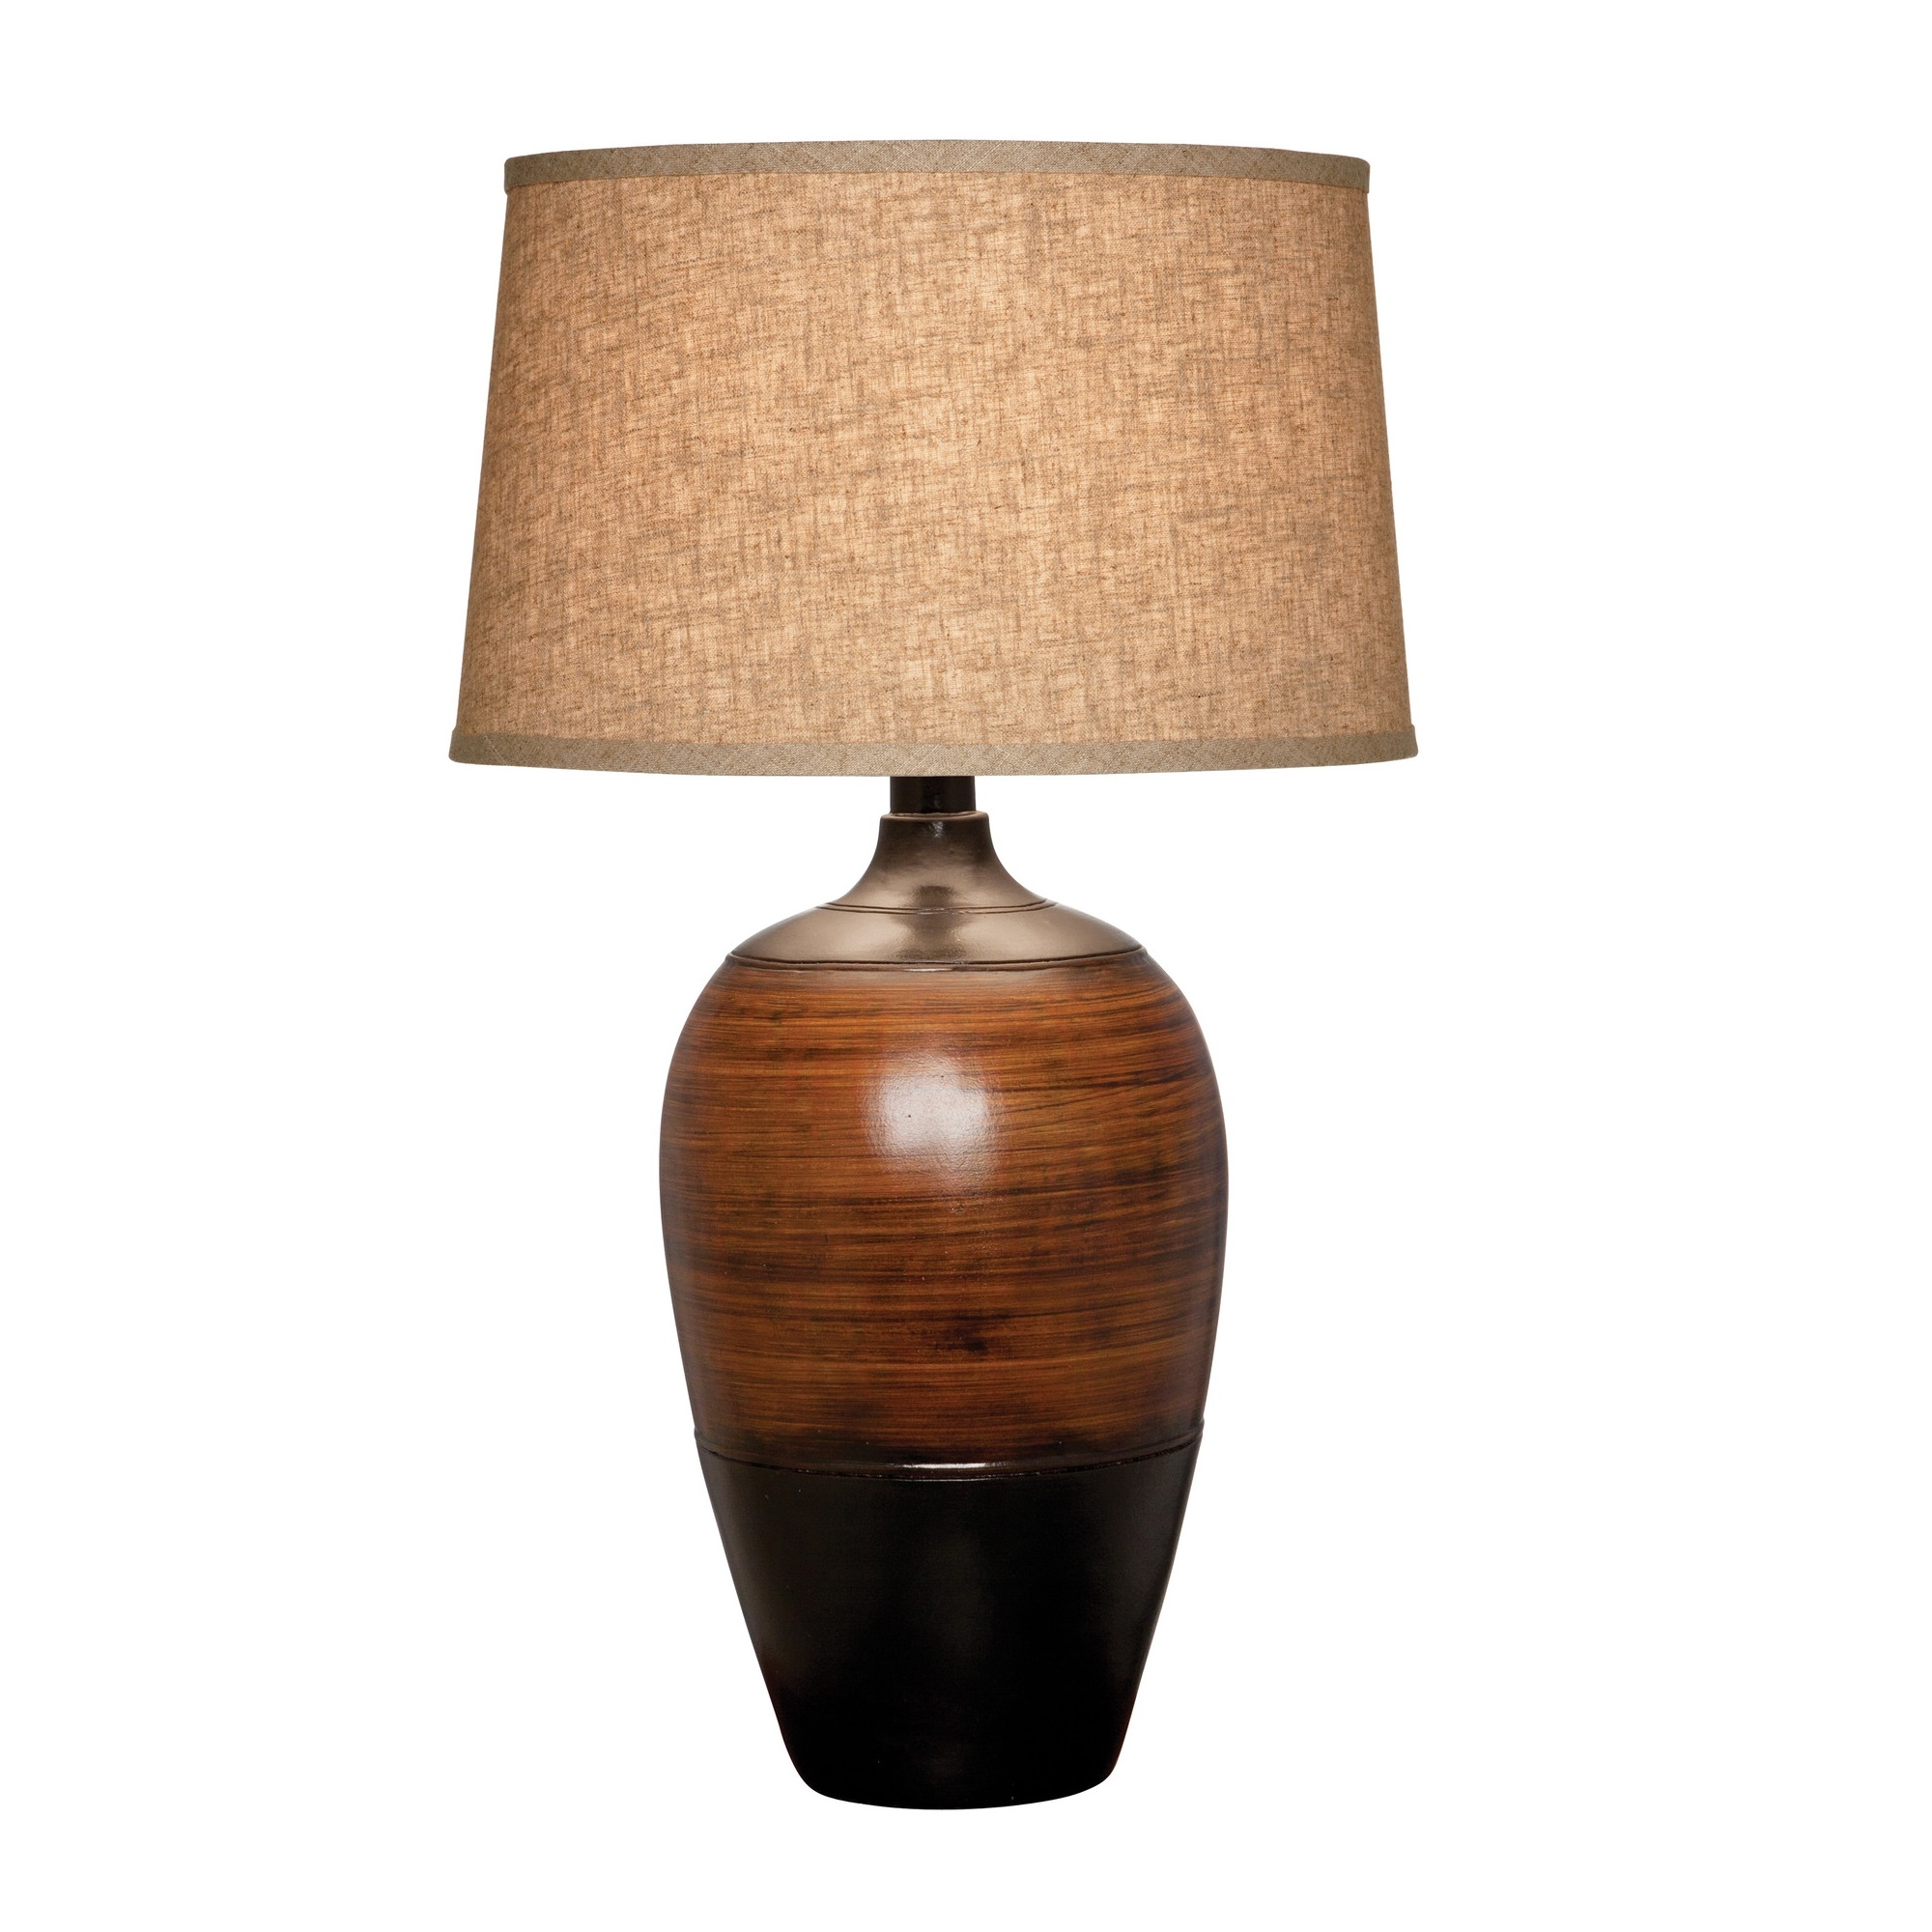 Anthony California Table Lamp In